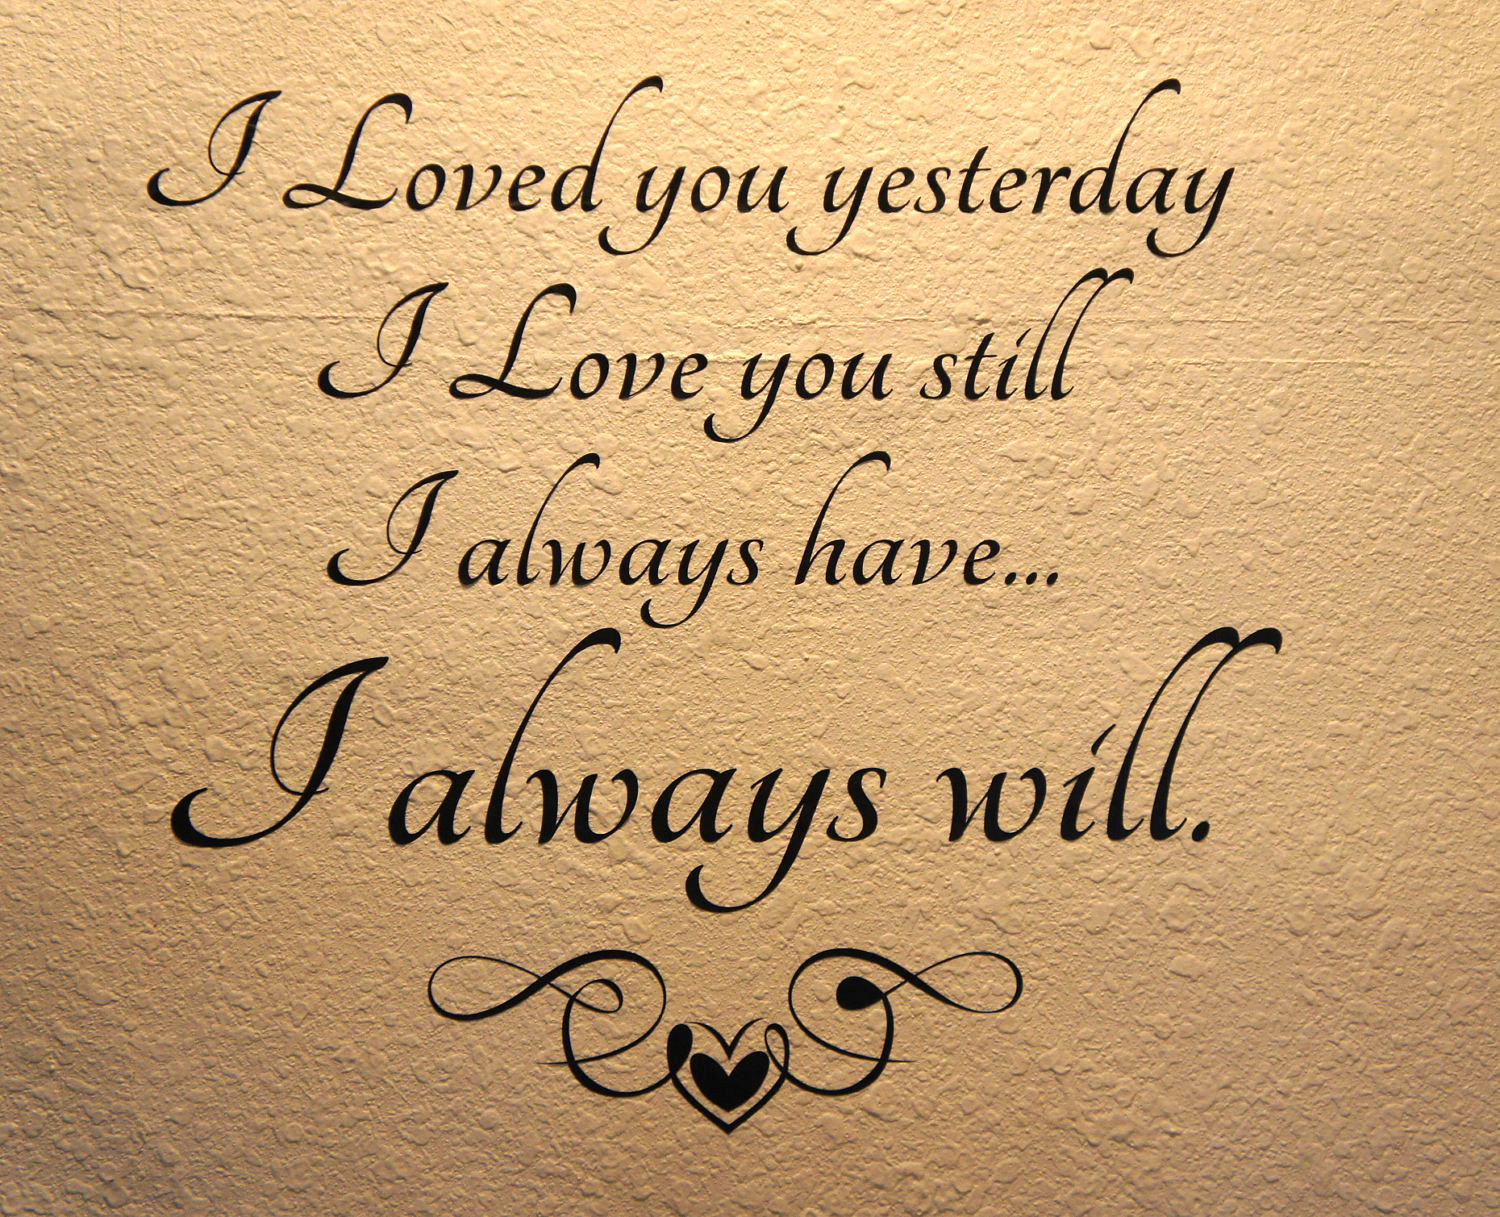 The Love I Have For You Quotes Image  Iloveyouquotesforhimforgalleryofiloveyouquotes